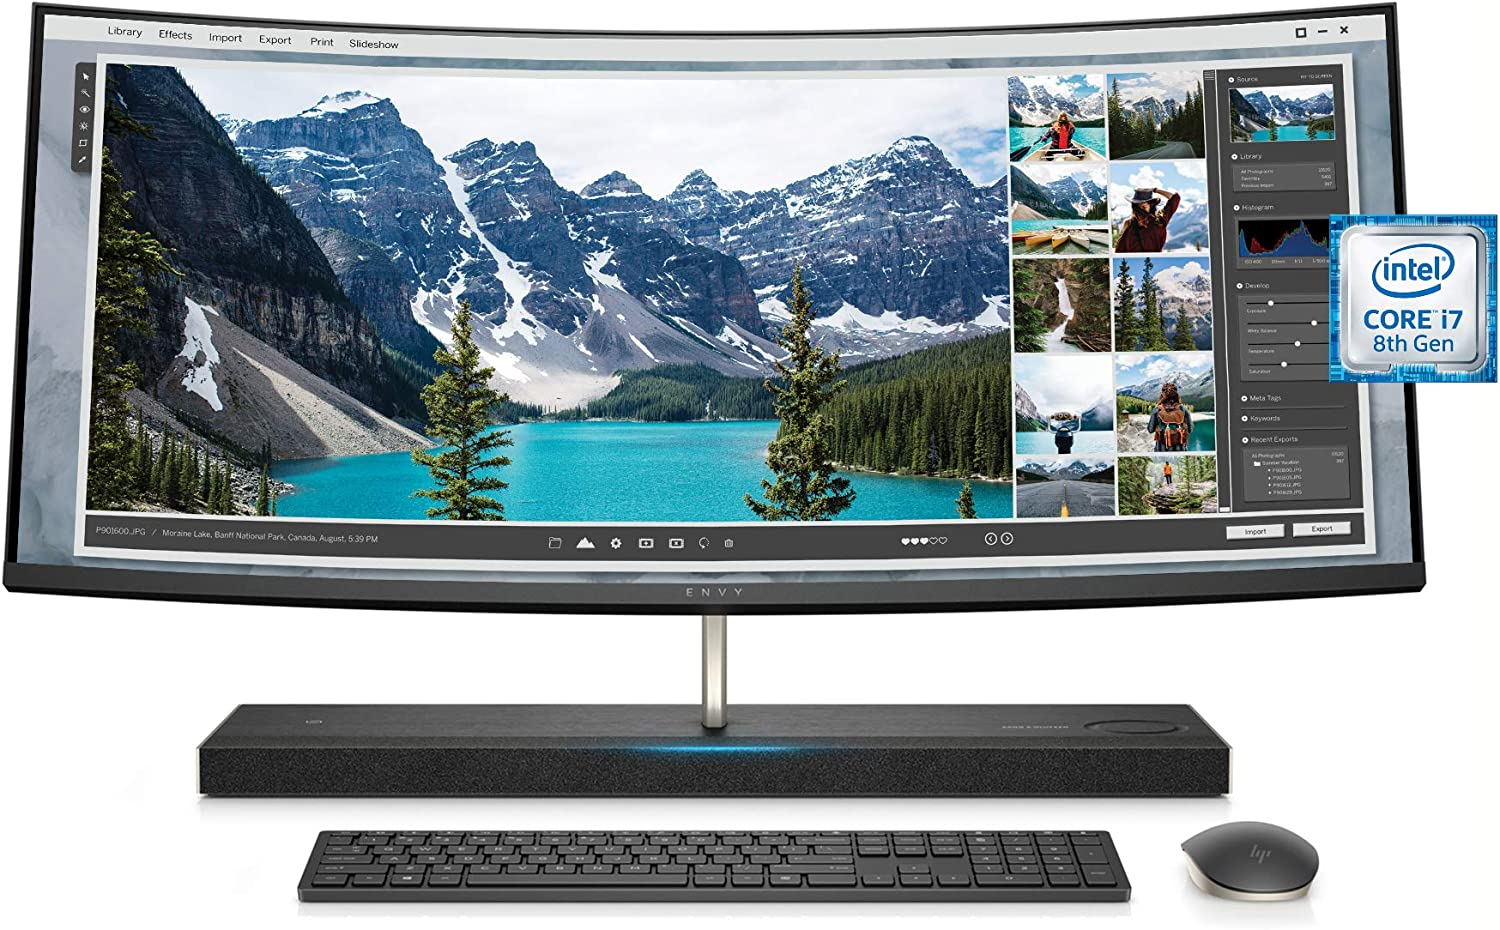 HP ENVY 34-inch Curved All-in-One Computer with Amazon Alexa, Intel Core i7-8700T, NVIDIA GeForce GTX 1050, 16 GB RAM, 1 TB hard drive, 256 GB SSD, Windows 10 (34-b110, Silver) - 3LB85AA#ABA